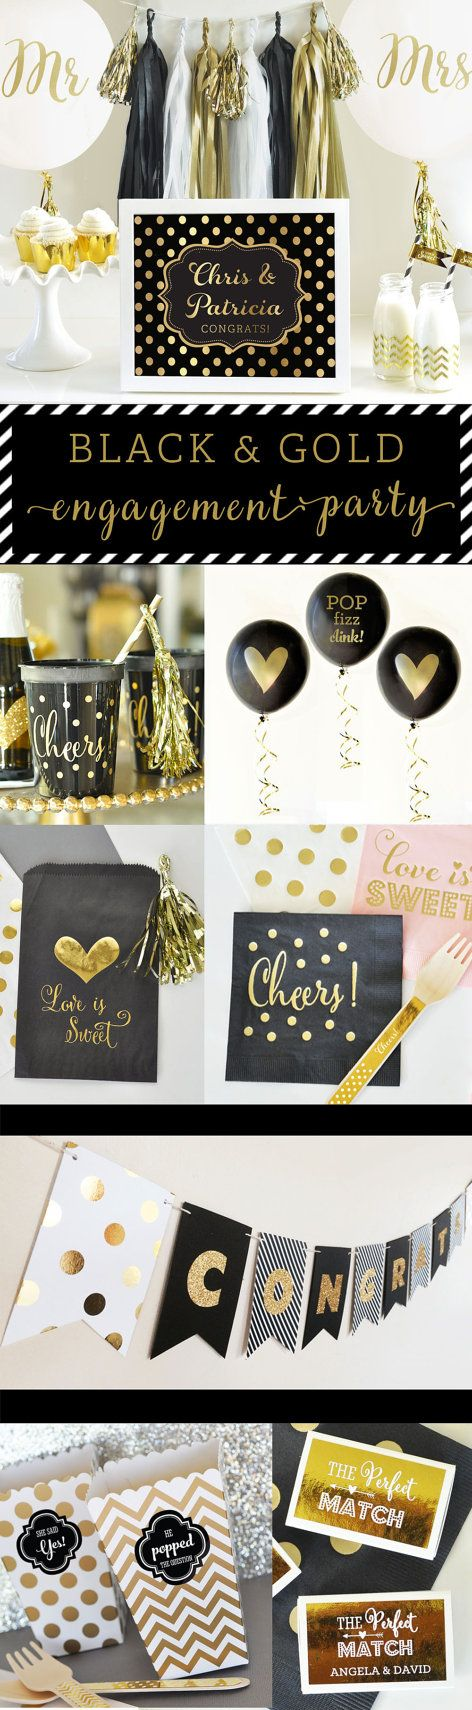 Cocktail Engagement Party Ideas Part - 21: Engagement Party Decor DIY Printable Welcome By Chalkboarddesign |  Engagement | Pinterest | Engagement Decorations, Engagement And Decoration